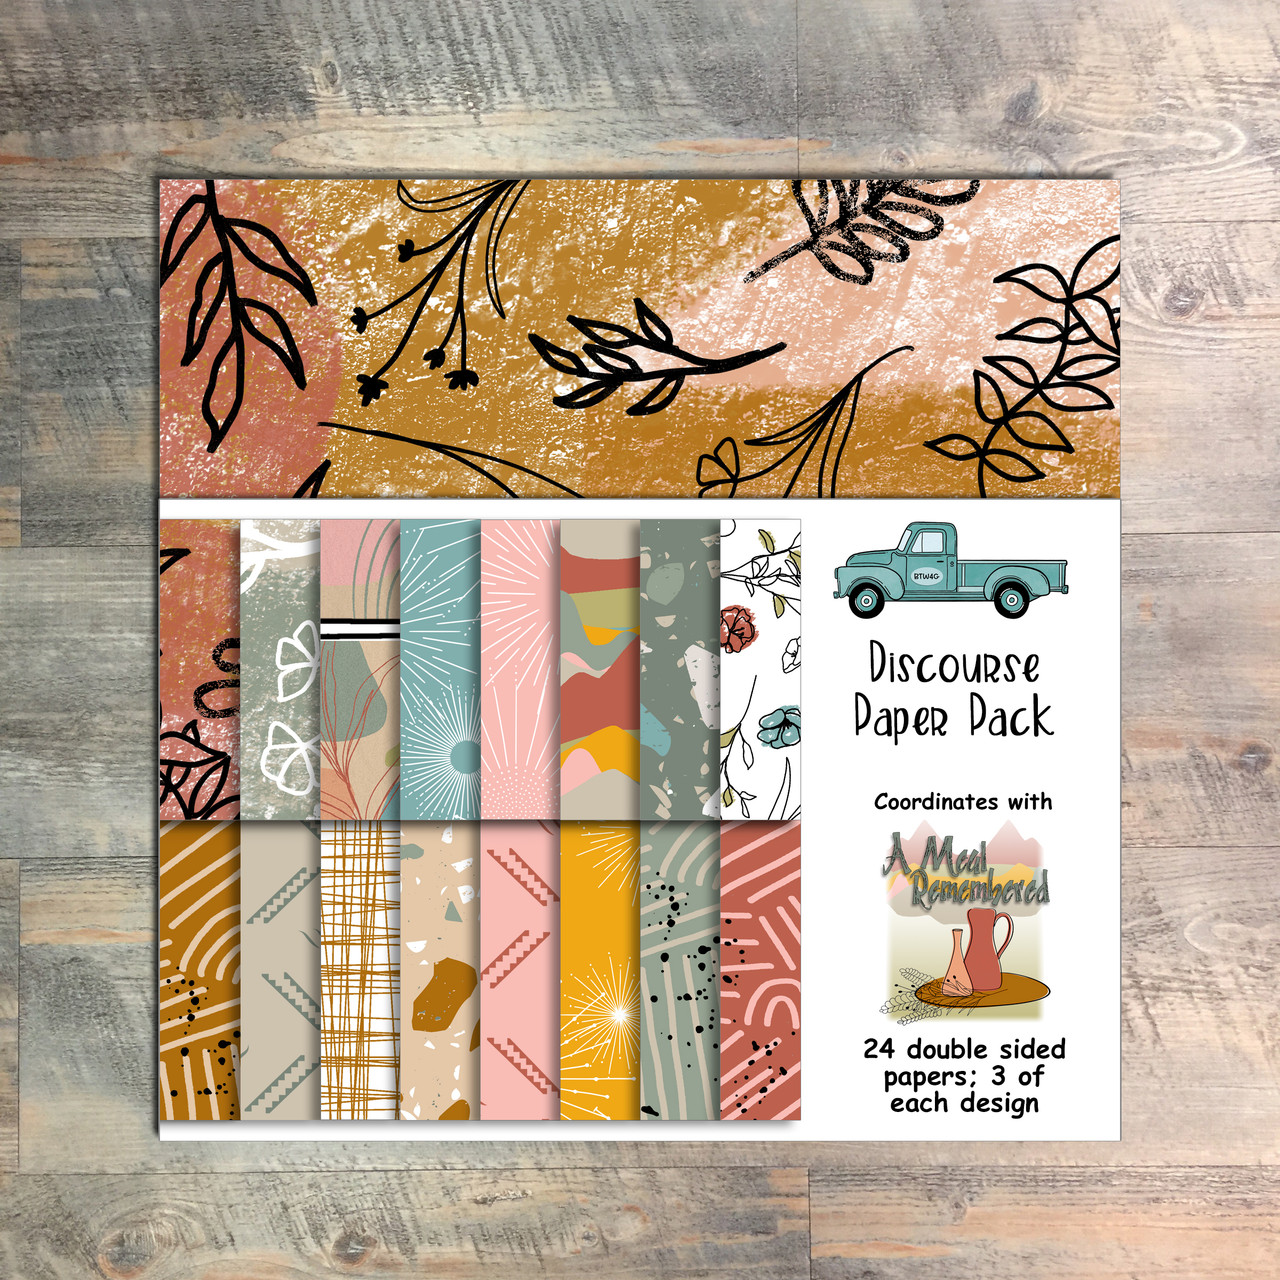 "A Meal Remembered - Discourse Paper Collection - 24 Double Sided 6x6 Papers - Coordinates with ""A Meal Remembered"" Devotional Kit"